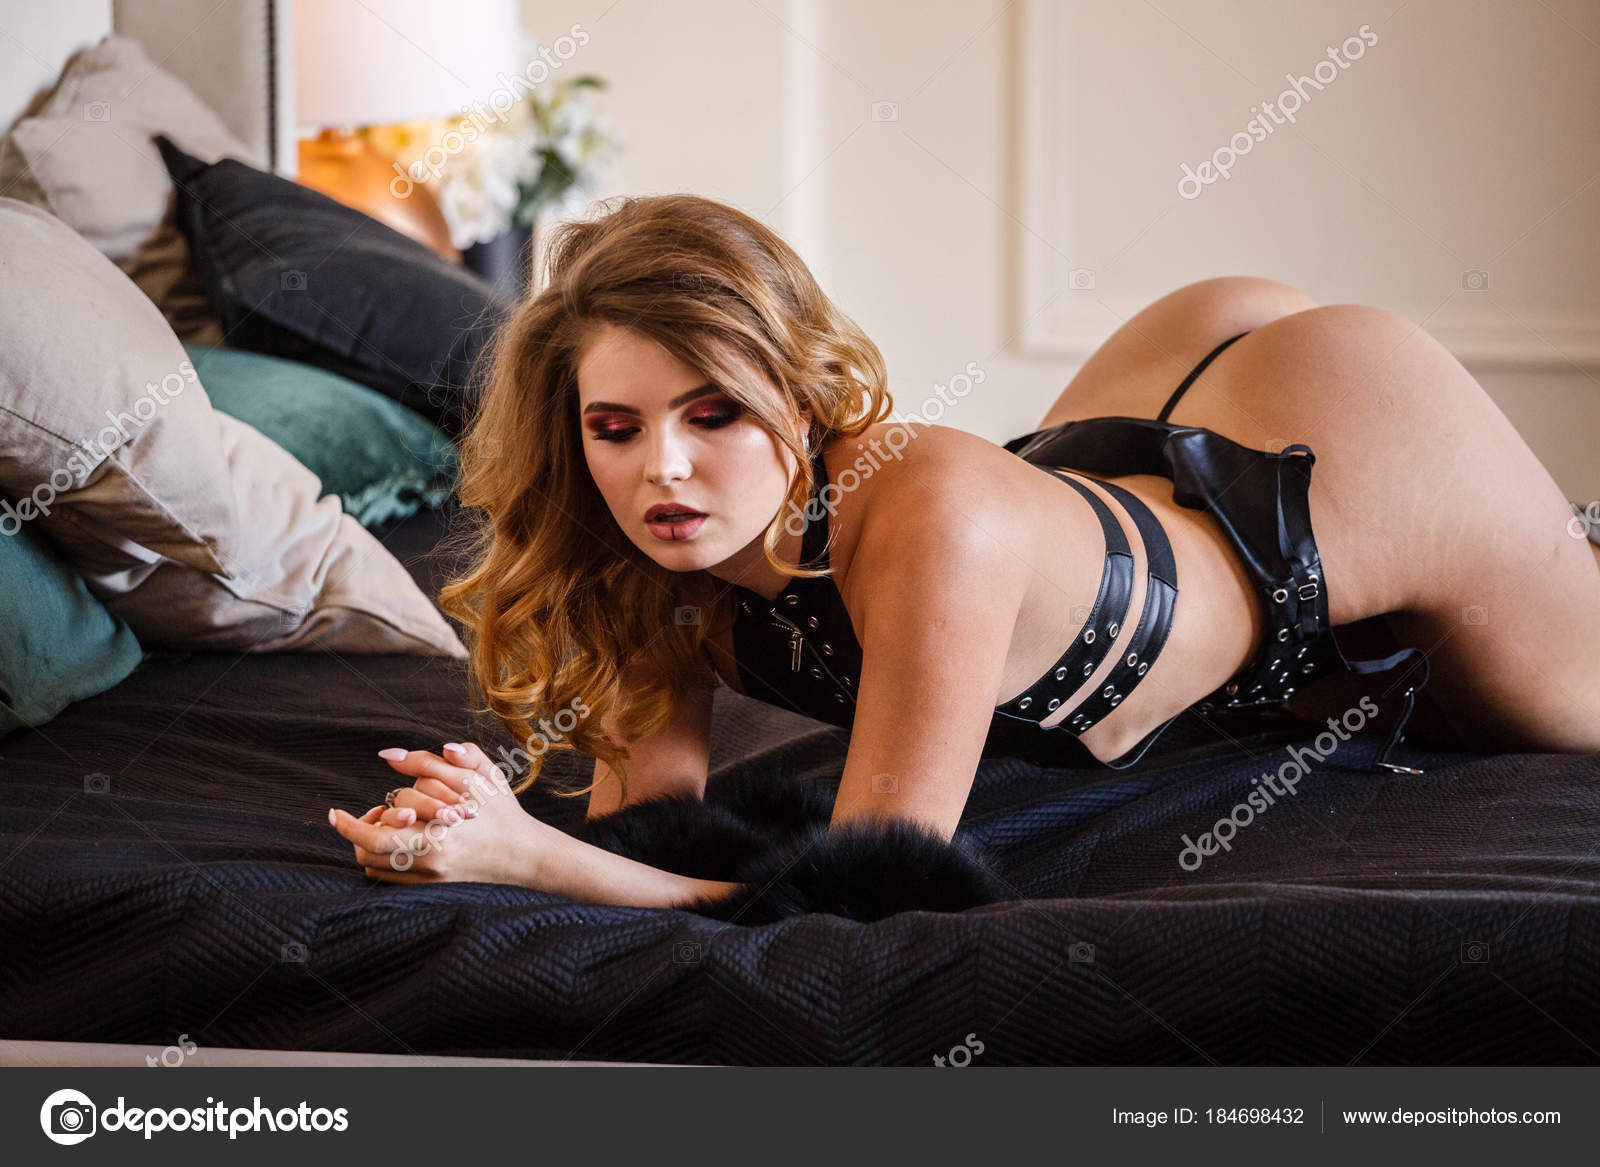 Phenomenal Studio Portrait Beauty Model Wearing Black Leather Lingerie Uwap Interior Chair Design Uwaporg